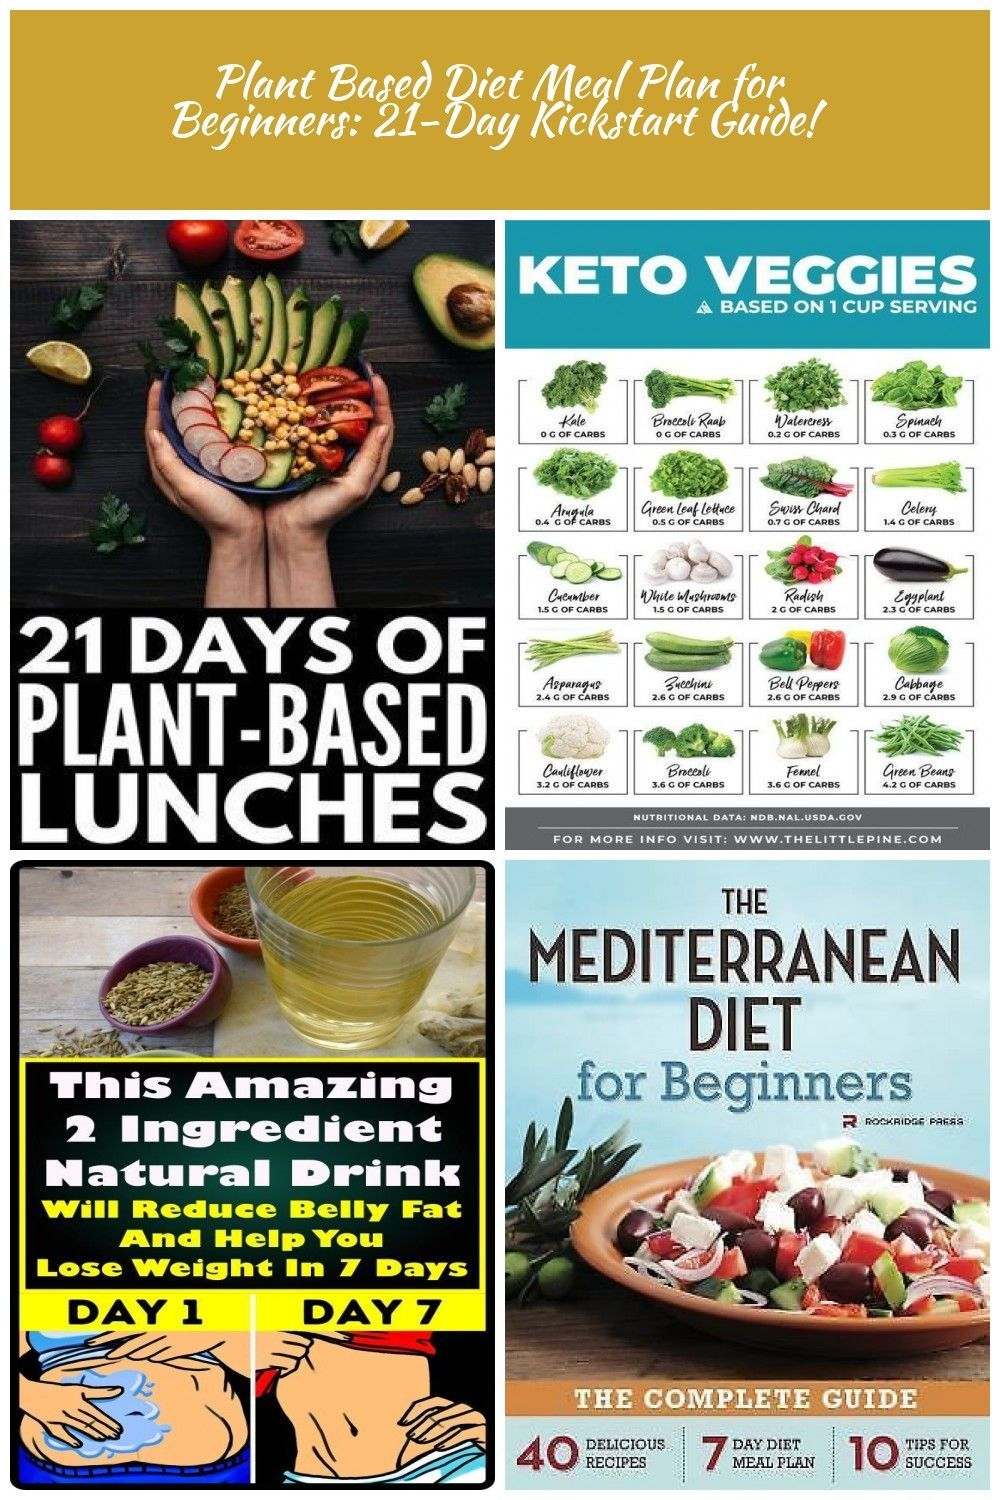 21-Day Plant Based Diet Meal Plan for Beginners | Looking for simple, whole food, budget-friend grocery lists and plant based recipes for weight loss? We've got a 21-day menu you'll LOVE. Whether you're looking for recipes for one, or need ideas for families (and for kids) so you're not cooking separate, these easy ideas will help you stick to your healthy eating goals without feeling deprived. #weightloss #plantbased #vegan #healthy #cleaneating diet plan for kids Plant Based Diet Meal Pl #plantbasedrecipesforbeginners